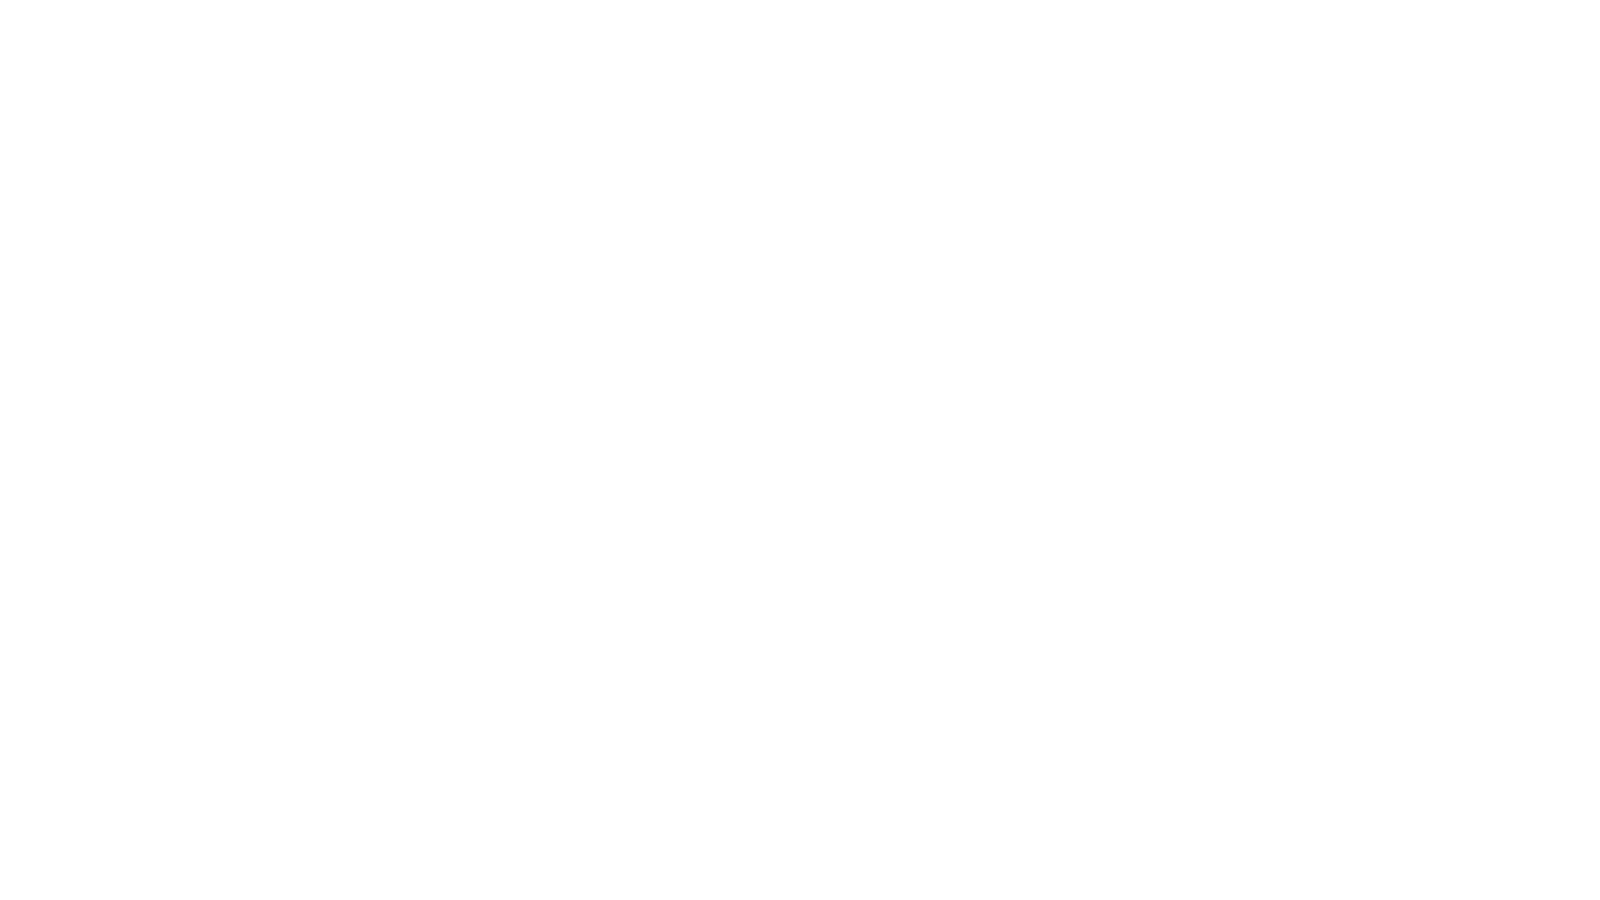 TimberTown